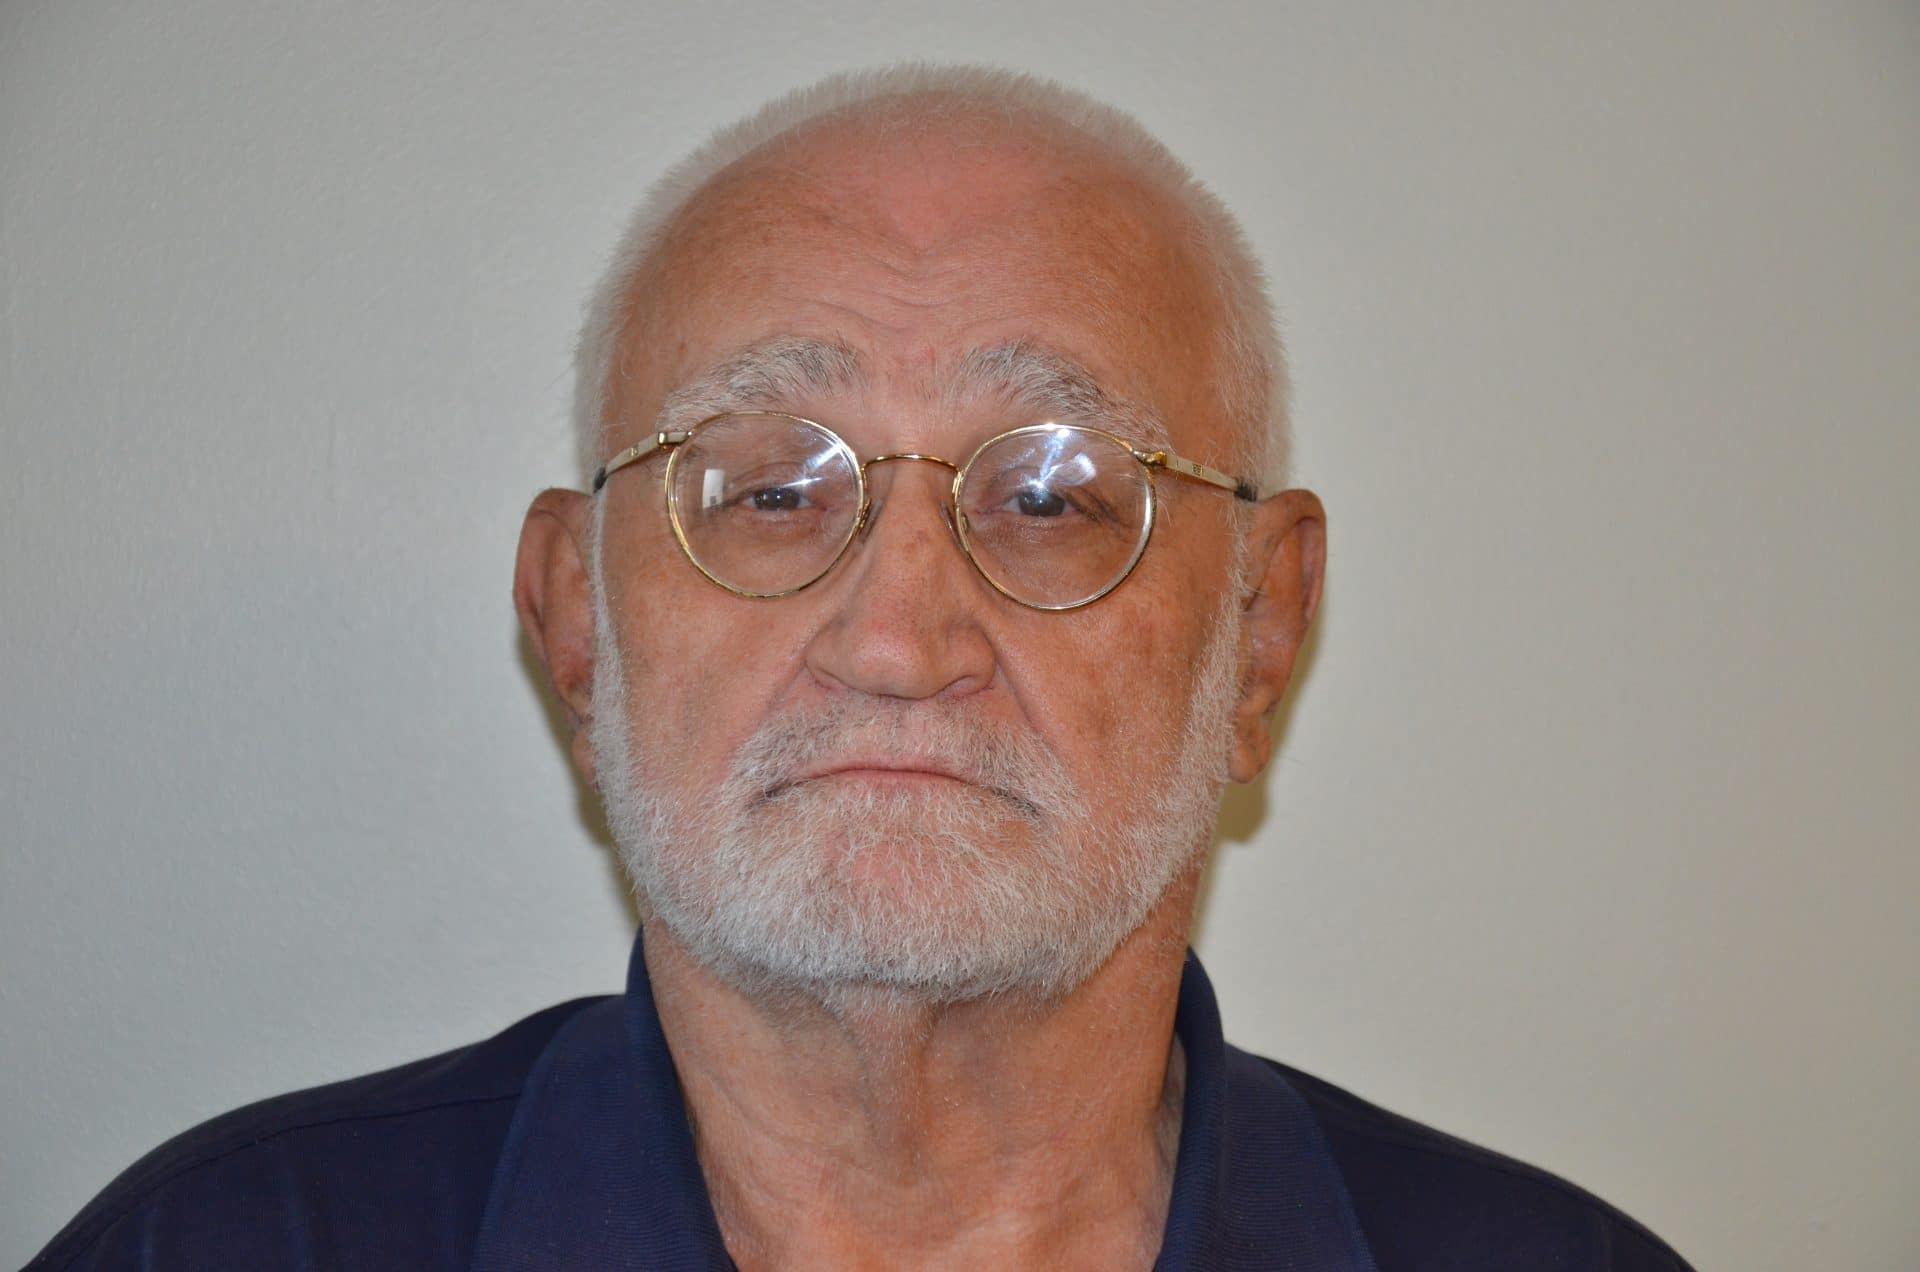 FEDERAL JURY CONVICTS BOONE, N.C. MAN FOR TRANSPORTING AND POSSESSING CHILD PORNOGRAPHY